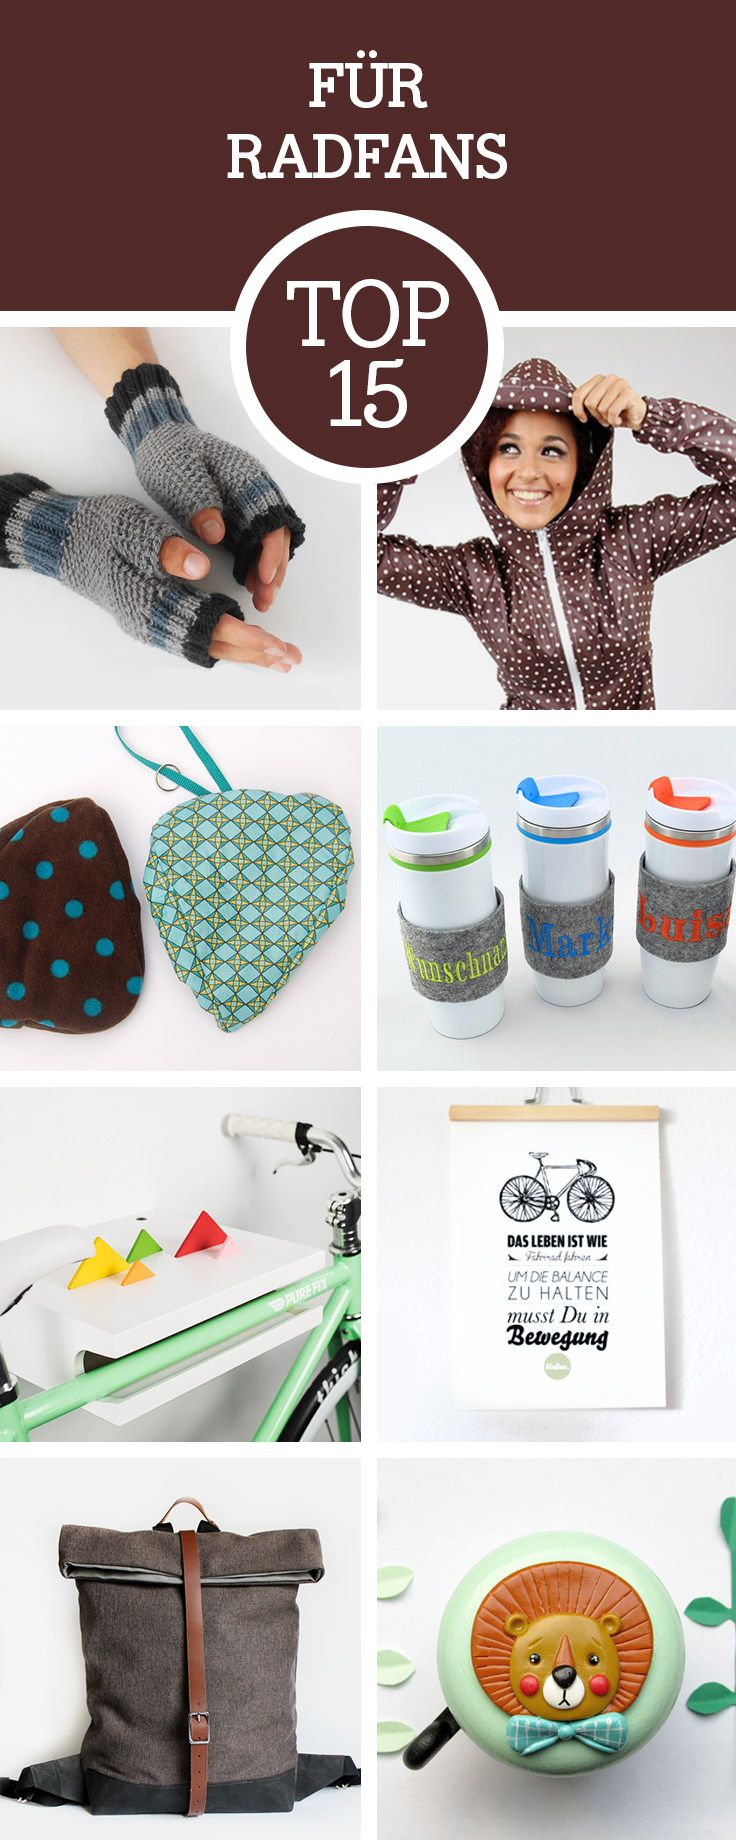 Du willst einem Radfahrer etwas witziges schenken? Dann lass Dich von unseren Top15 Geschenkideen für Radfahrer inspirieren / get inspired by our top 15 gift ideas for people, who love to ride a bike, bycicle via DaWanda.com